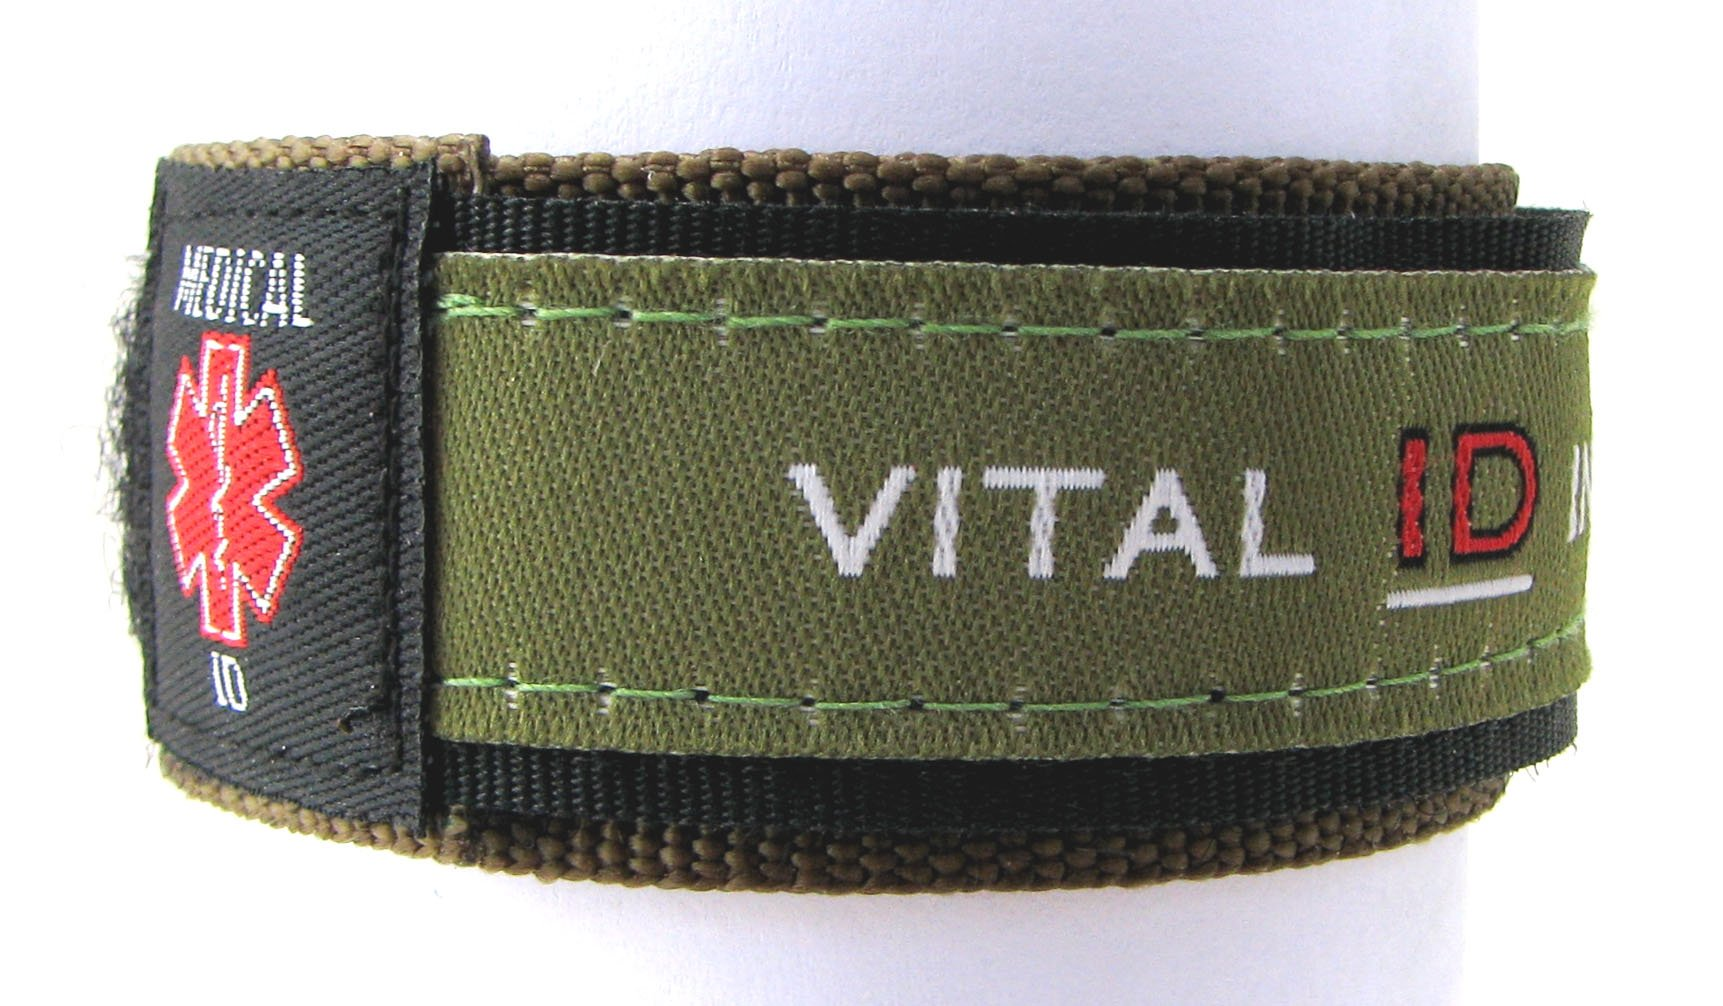 Vital ID Medical ID Wrist Band - Adult (Olive Green)